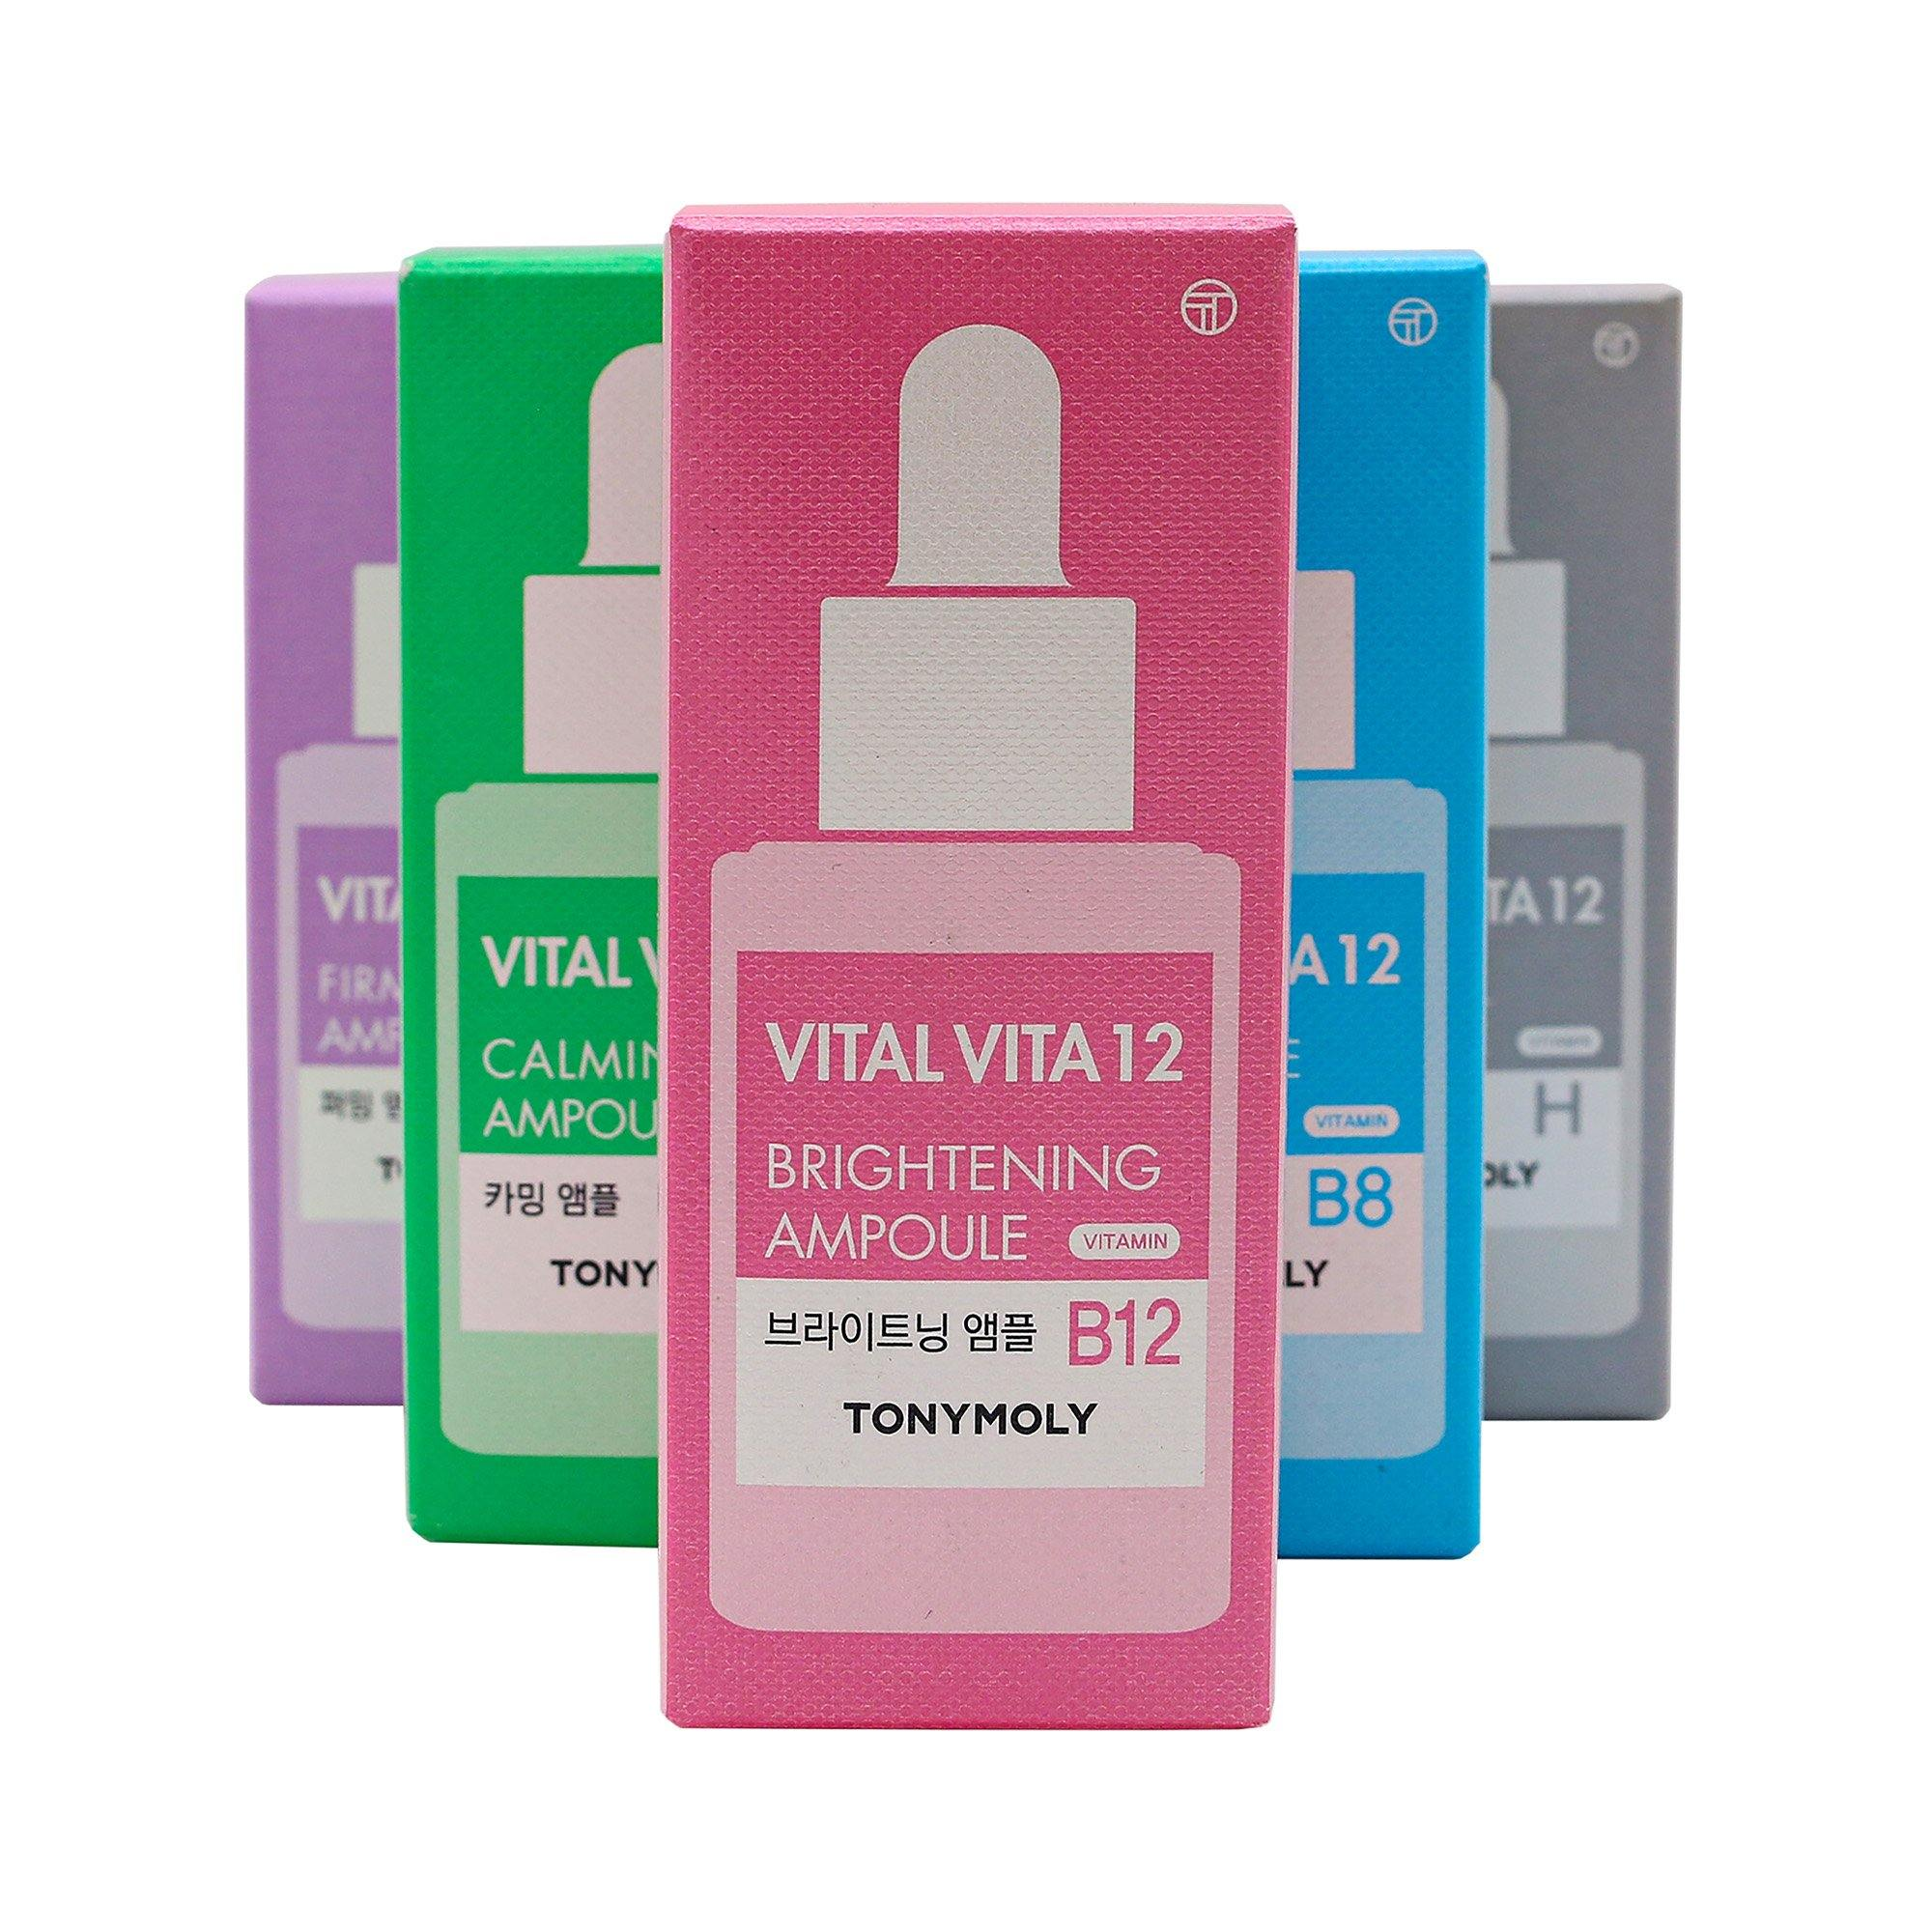 TONYMOLY Vital Vita 12 - Brightening Ampoule - TONYMOLY OFFICIAL